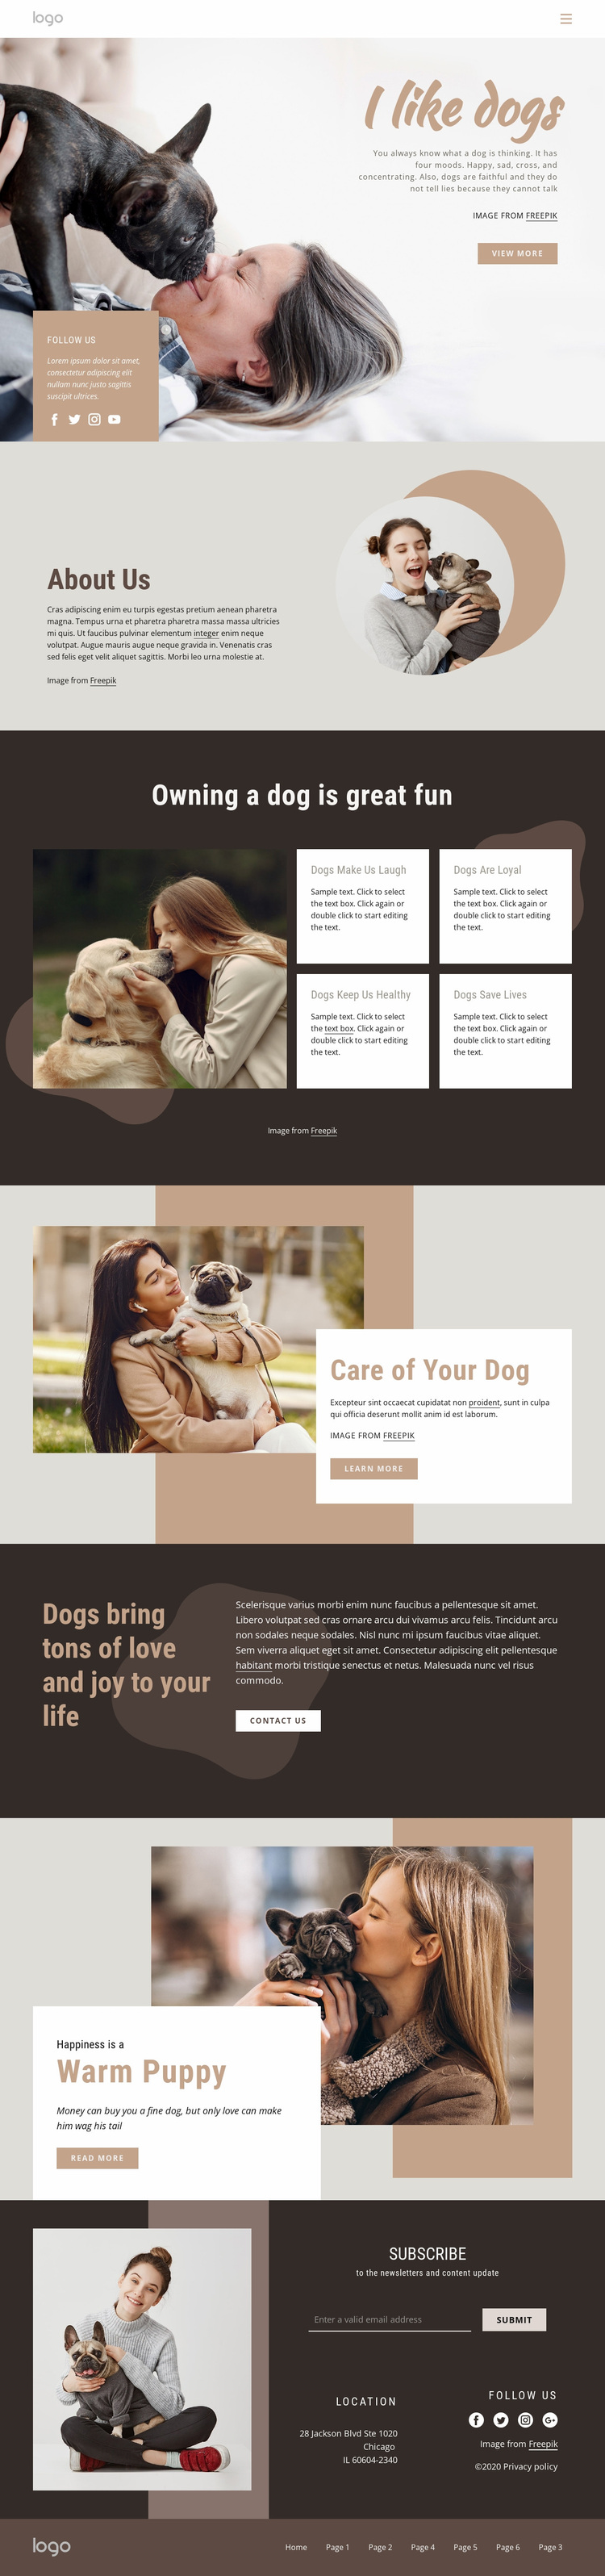 All about dogs Website Design